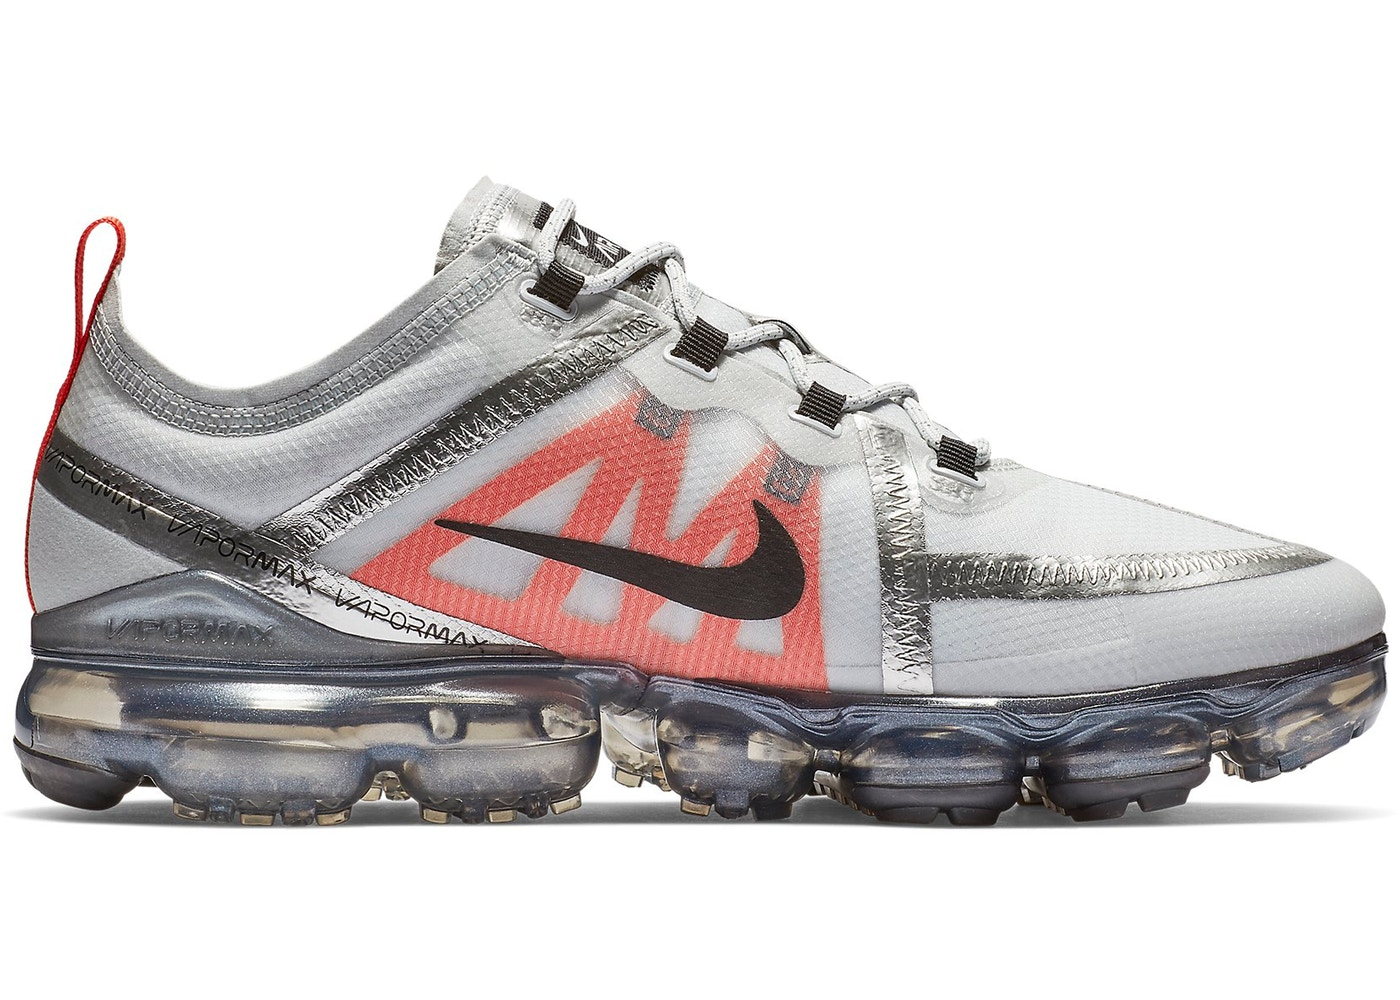 1808026cd97 Nike Air Max VaporMax Shoes - New Lowest Asks